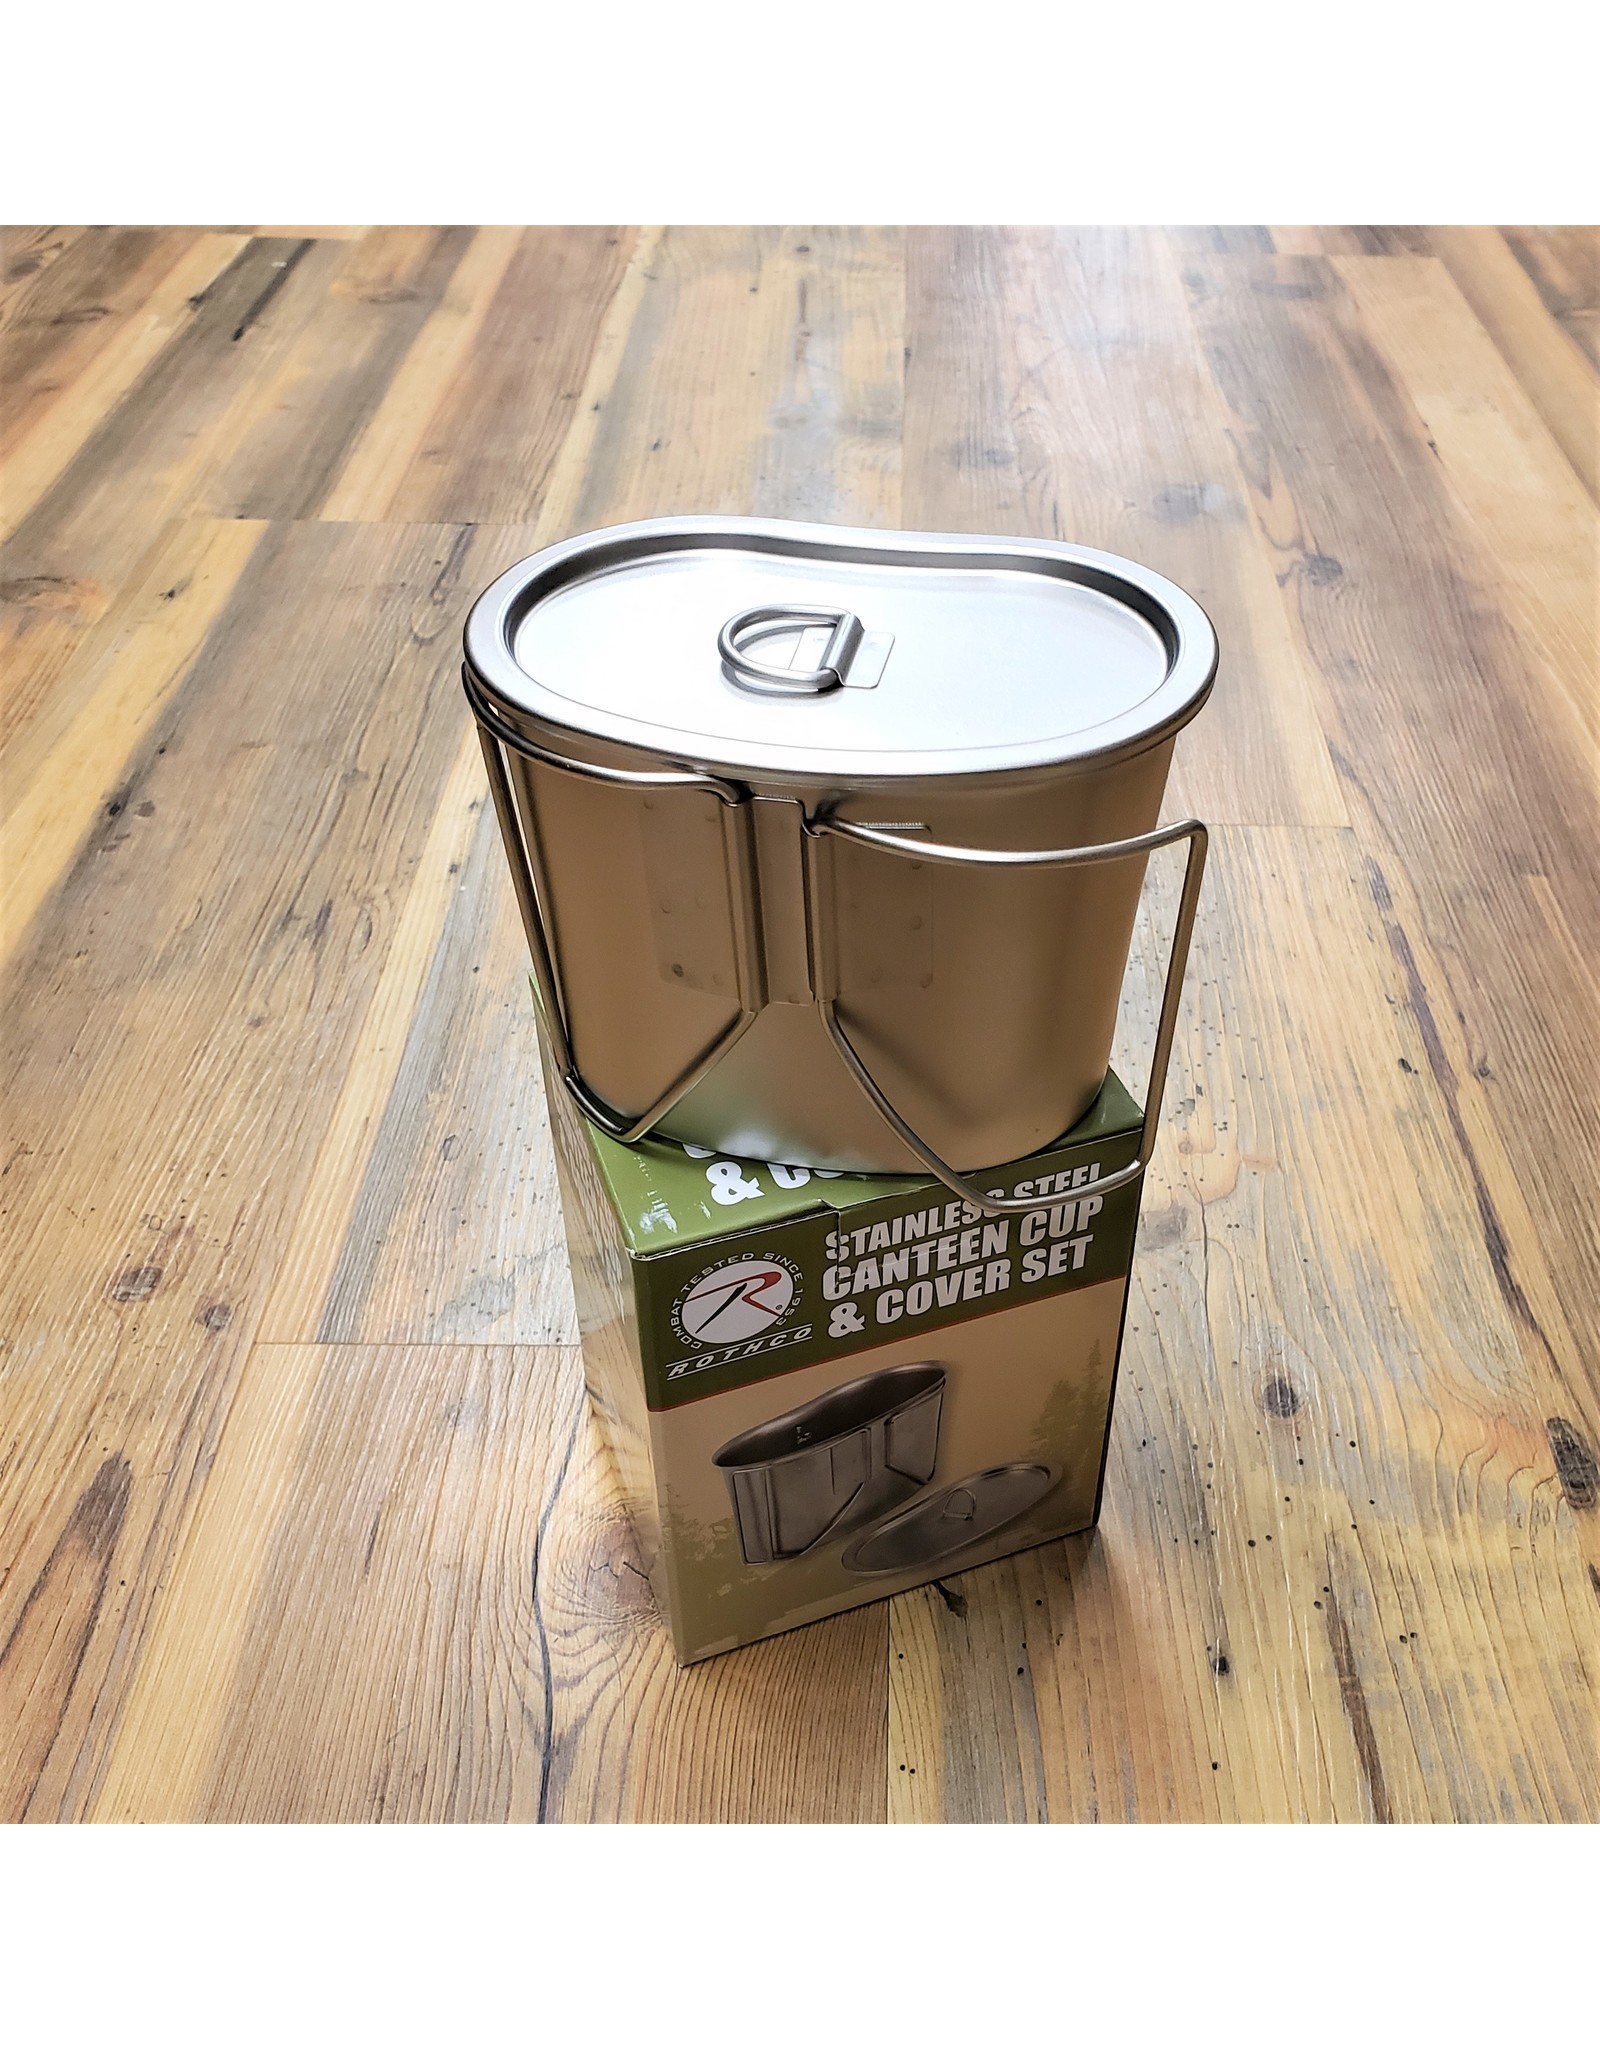 ROTHCO STAINLESS STEEL CANTTEN CUP/COVER SET